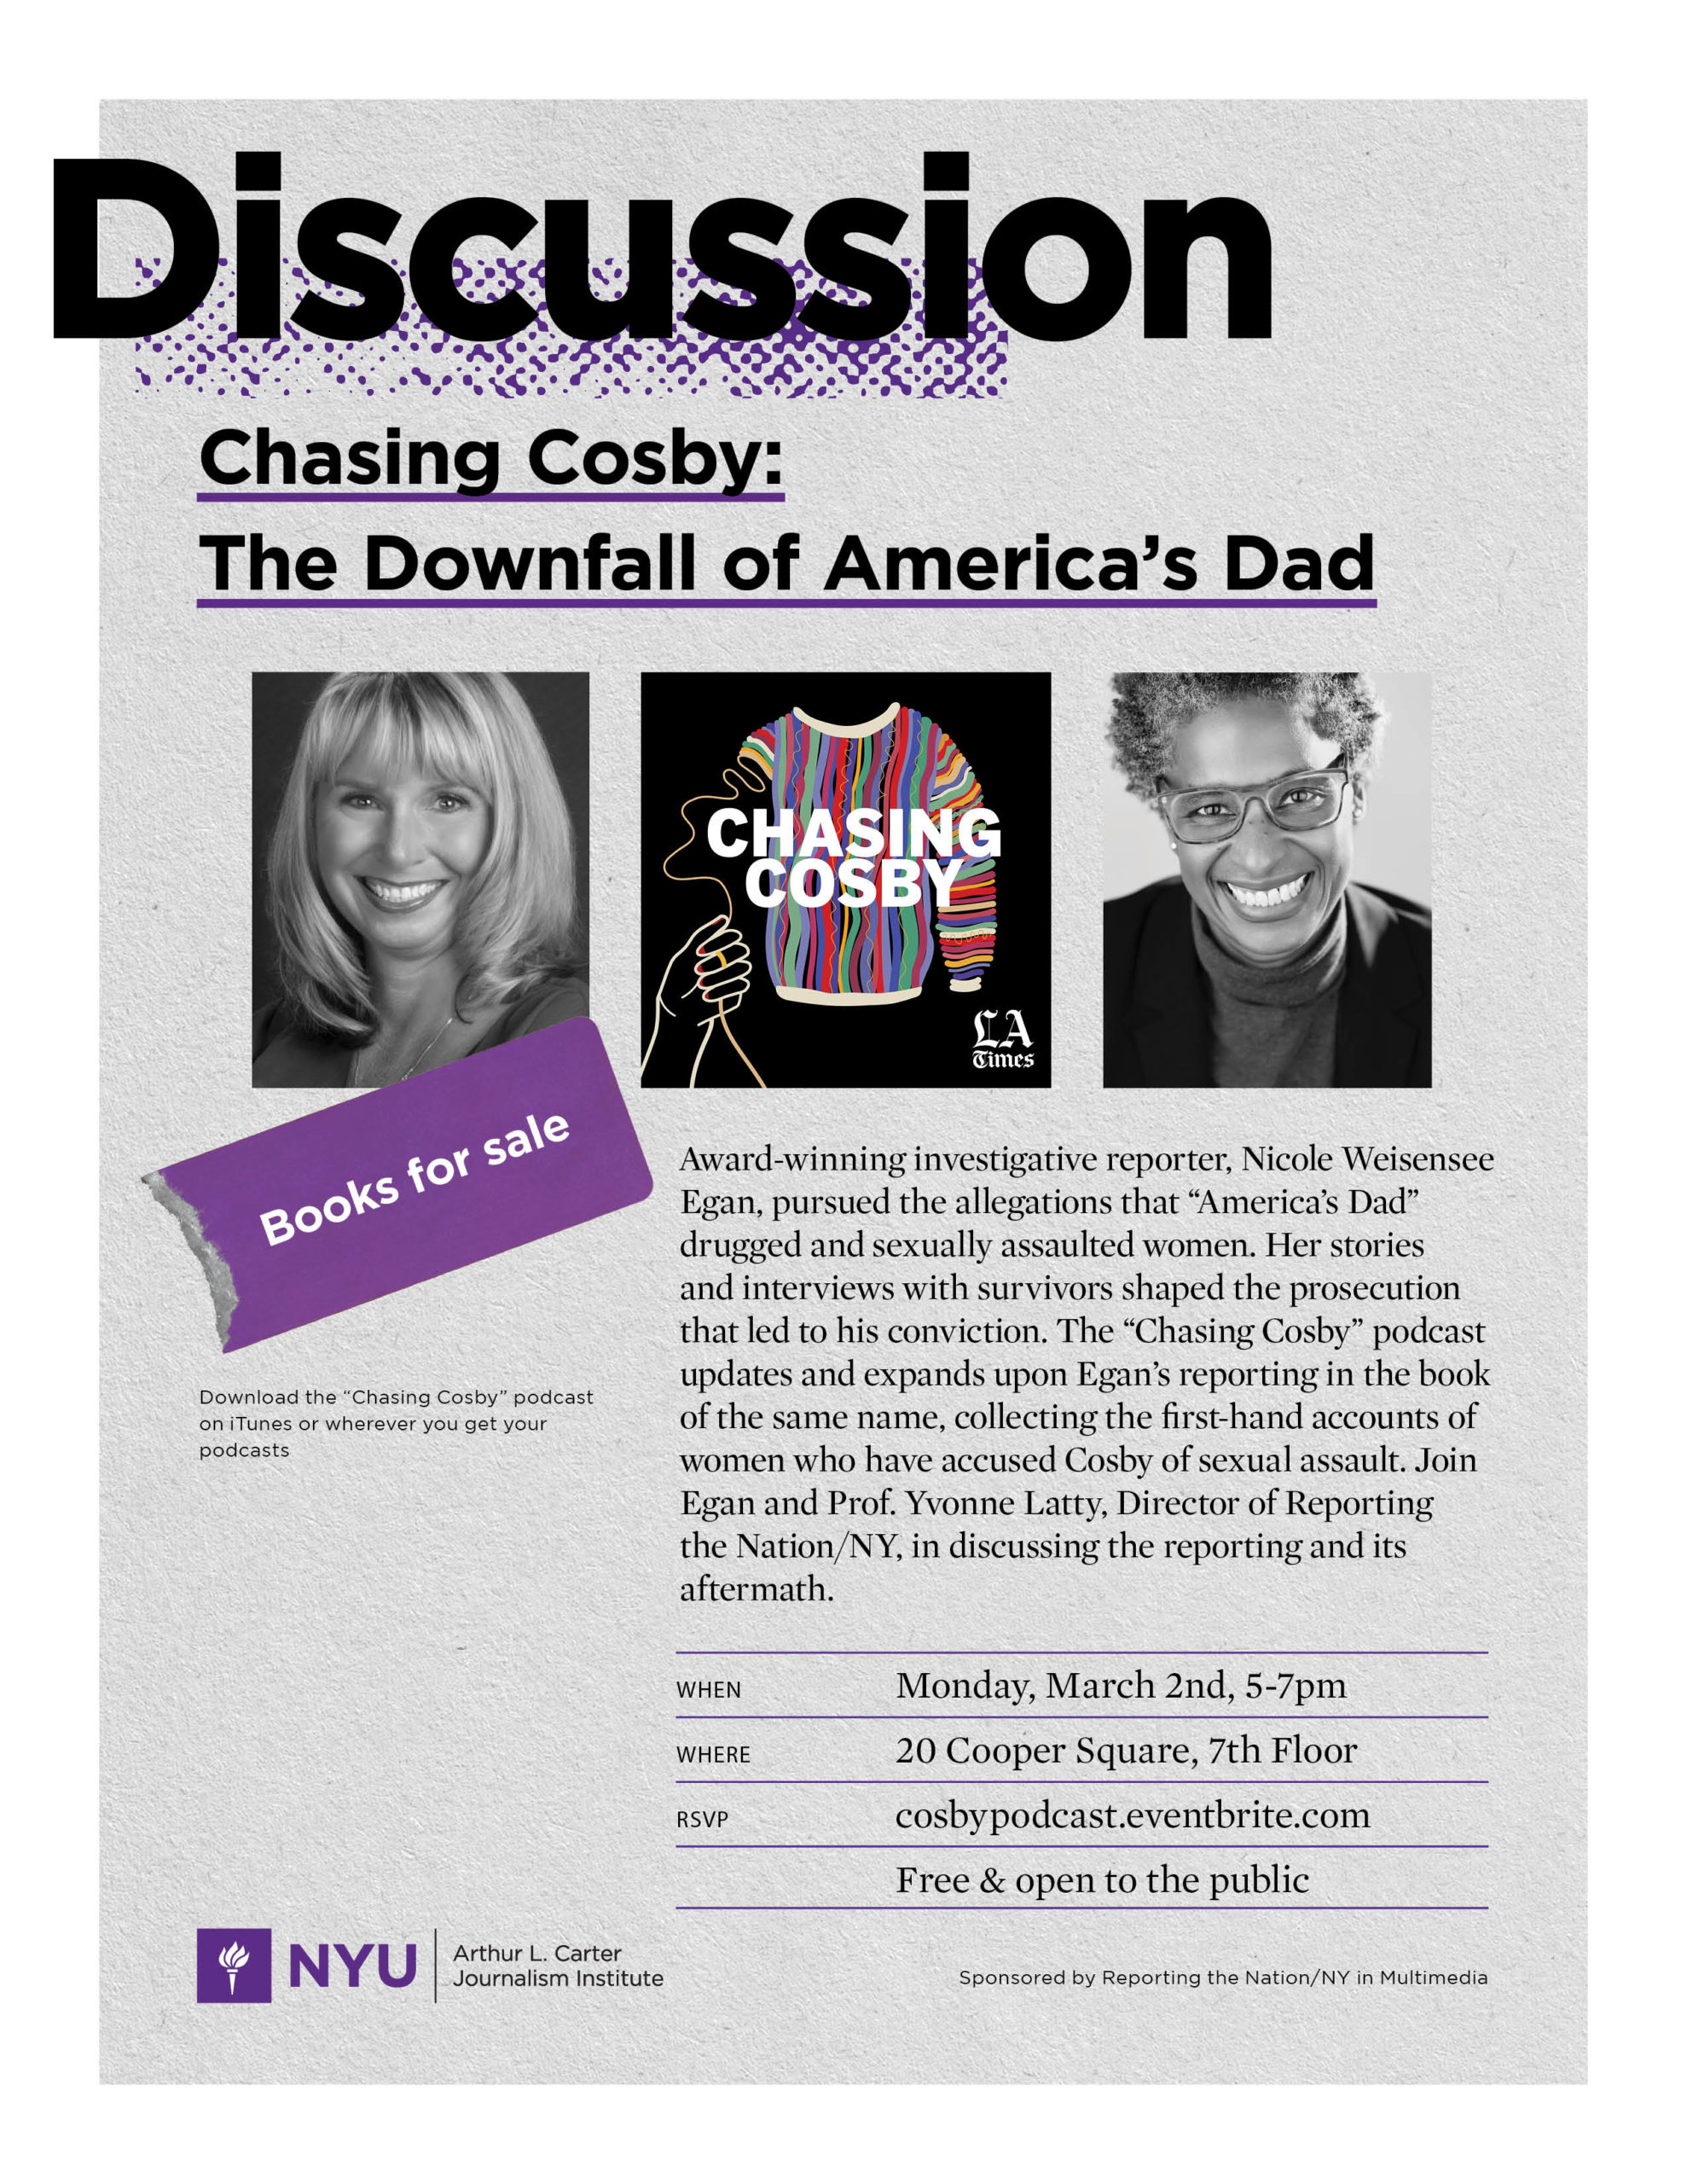 Chasing Cosby: The Downfall of America's Dad